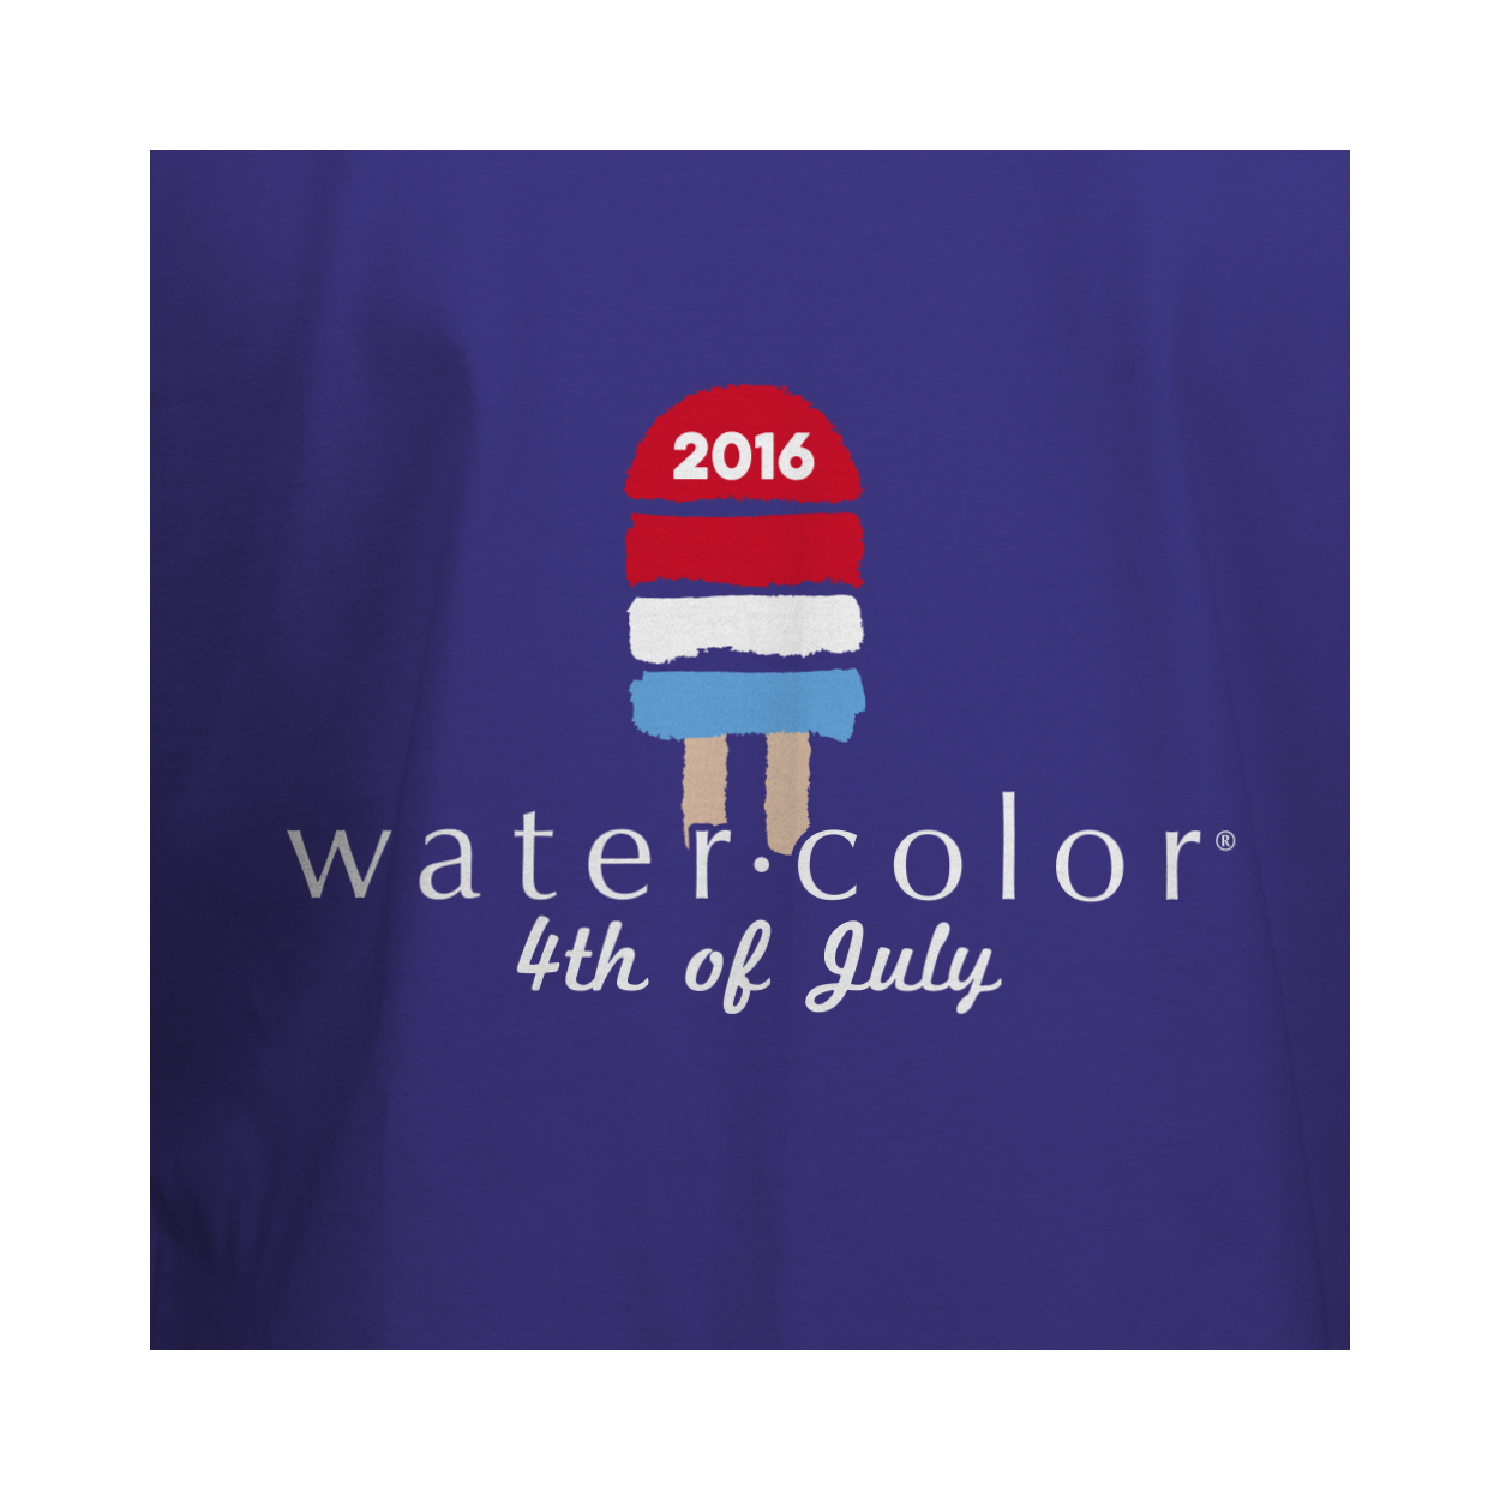 4th of July 2016-01